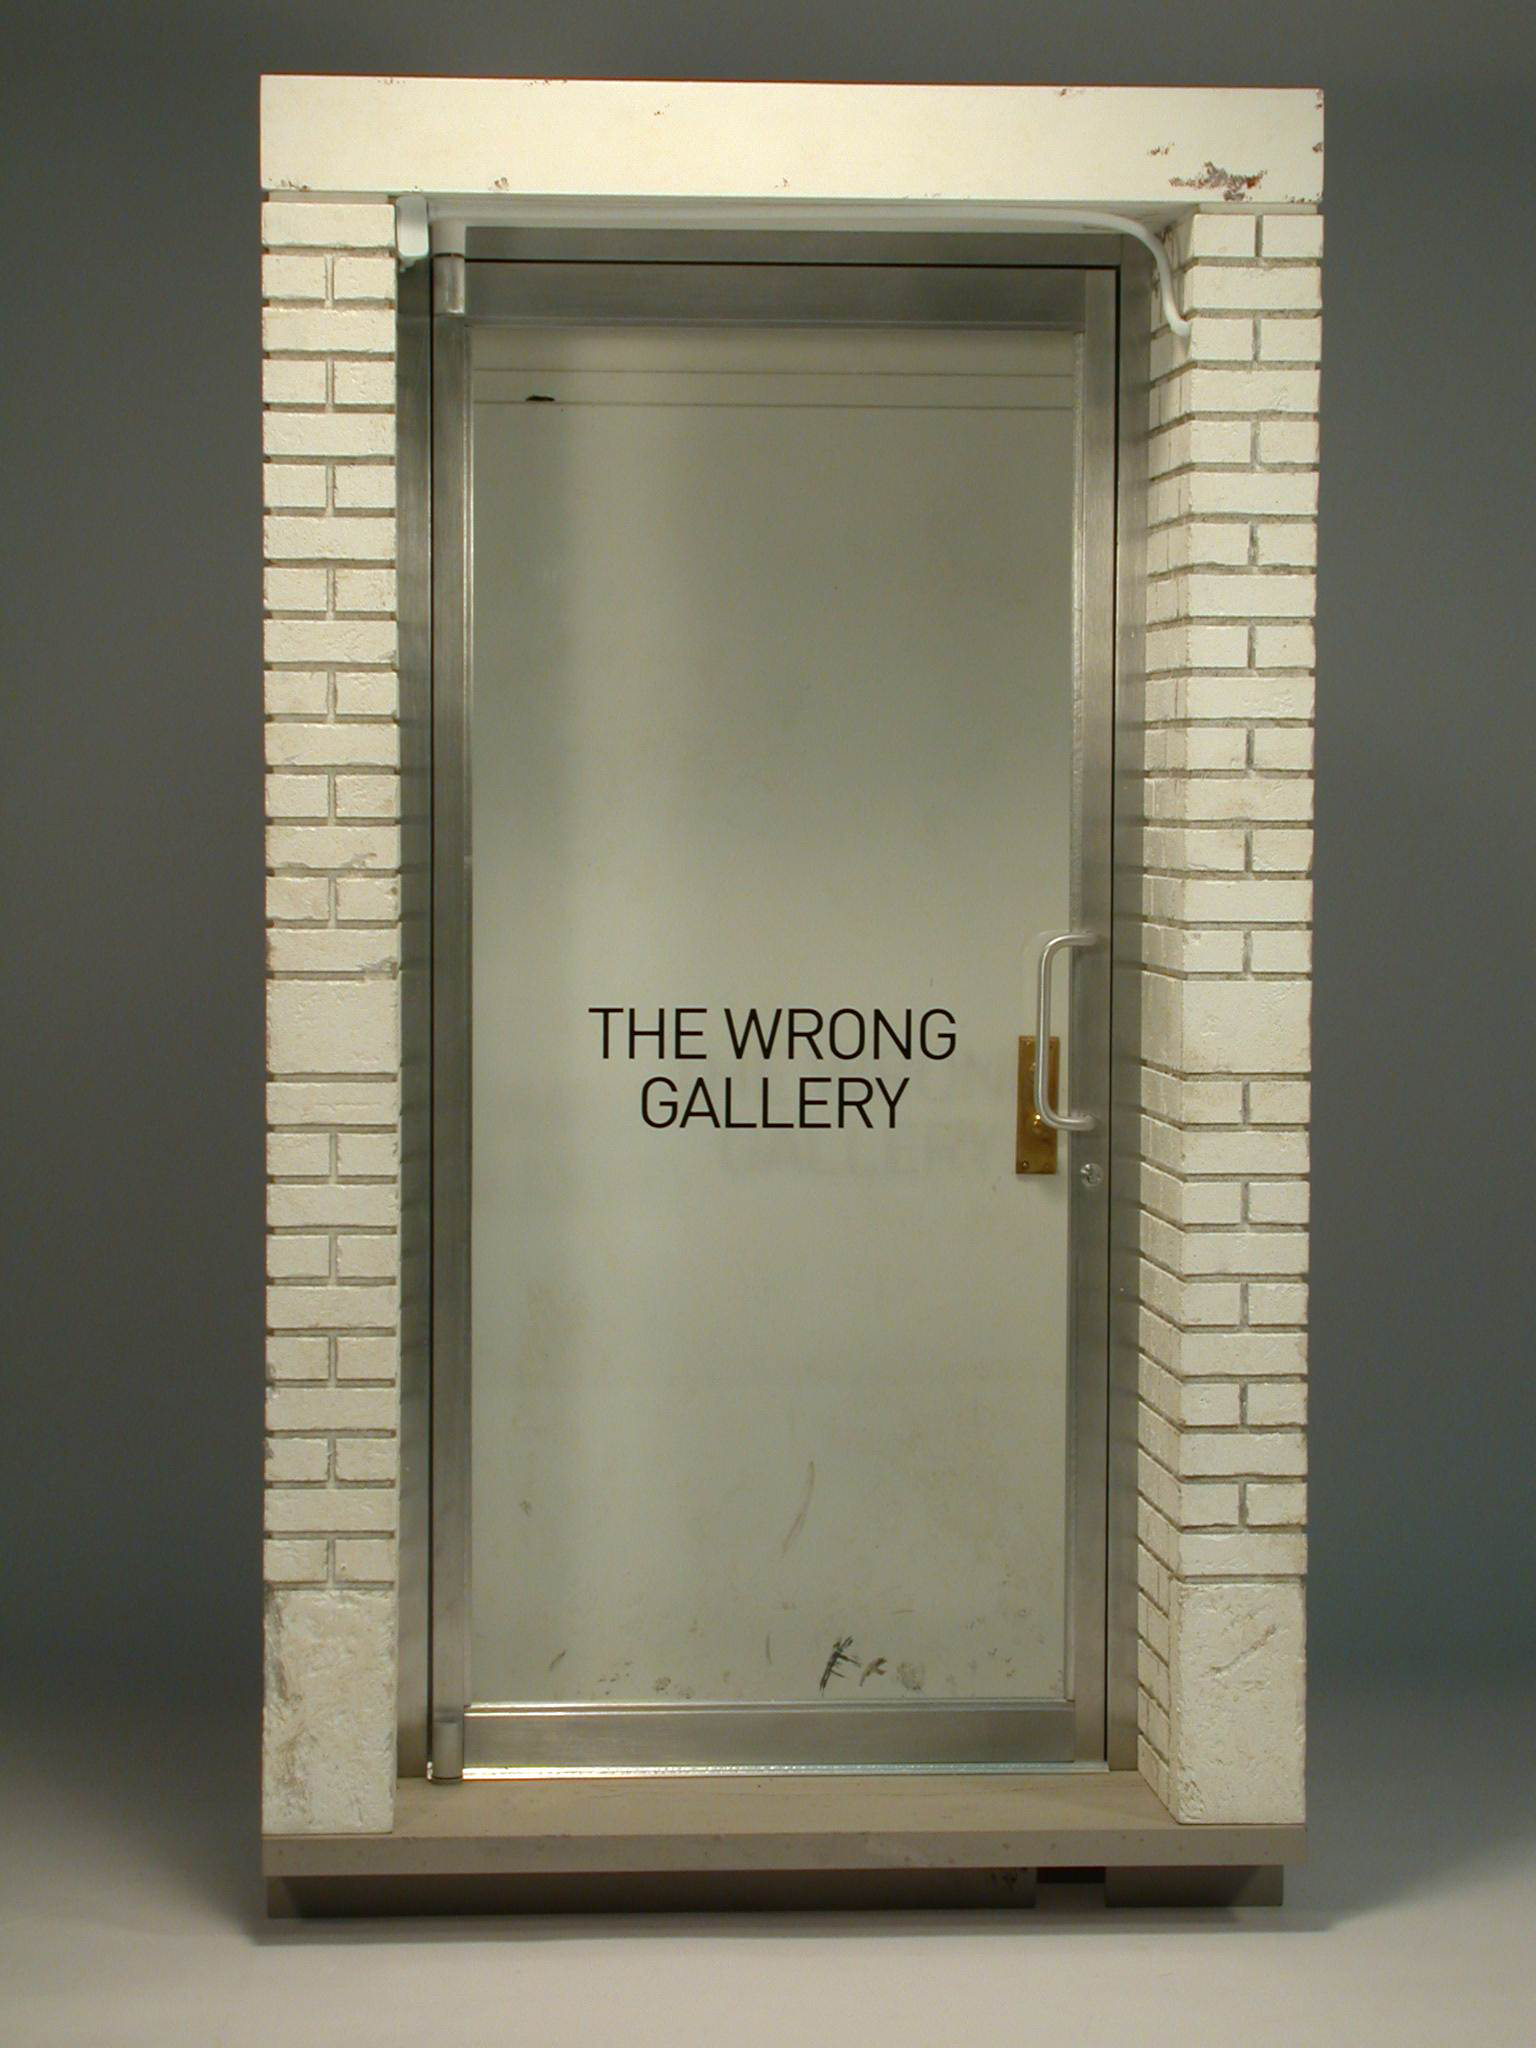 The Wrong Gallery